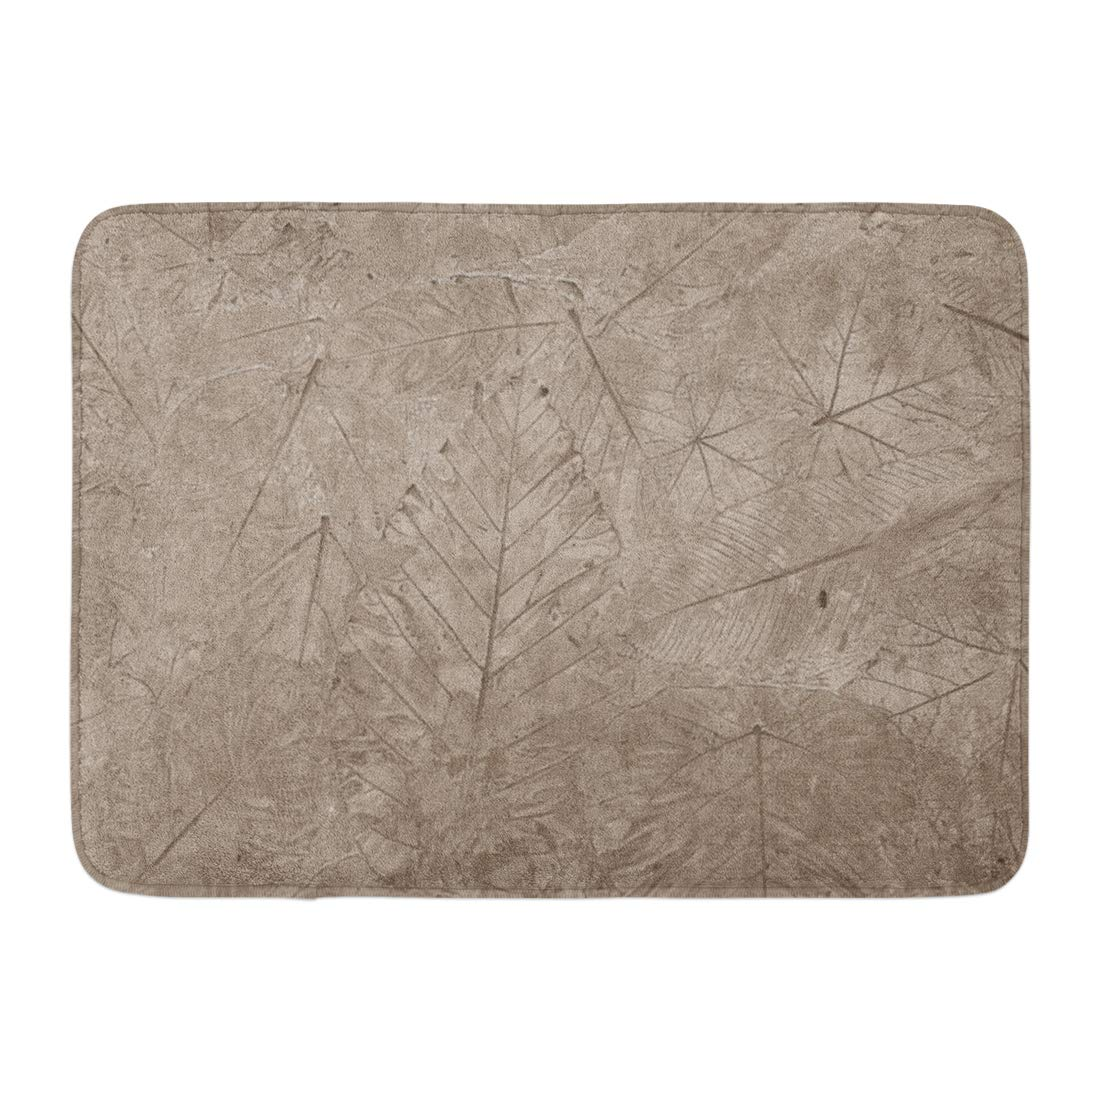 GODPOK Metal Brown Floral Leaves on Cement Ground Leaf Bronze Rug Doormat Bath Mat 23.6x15.7 inch